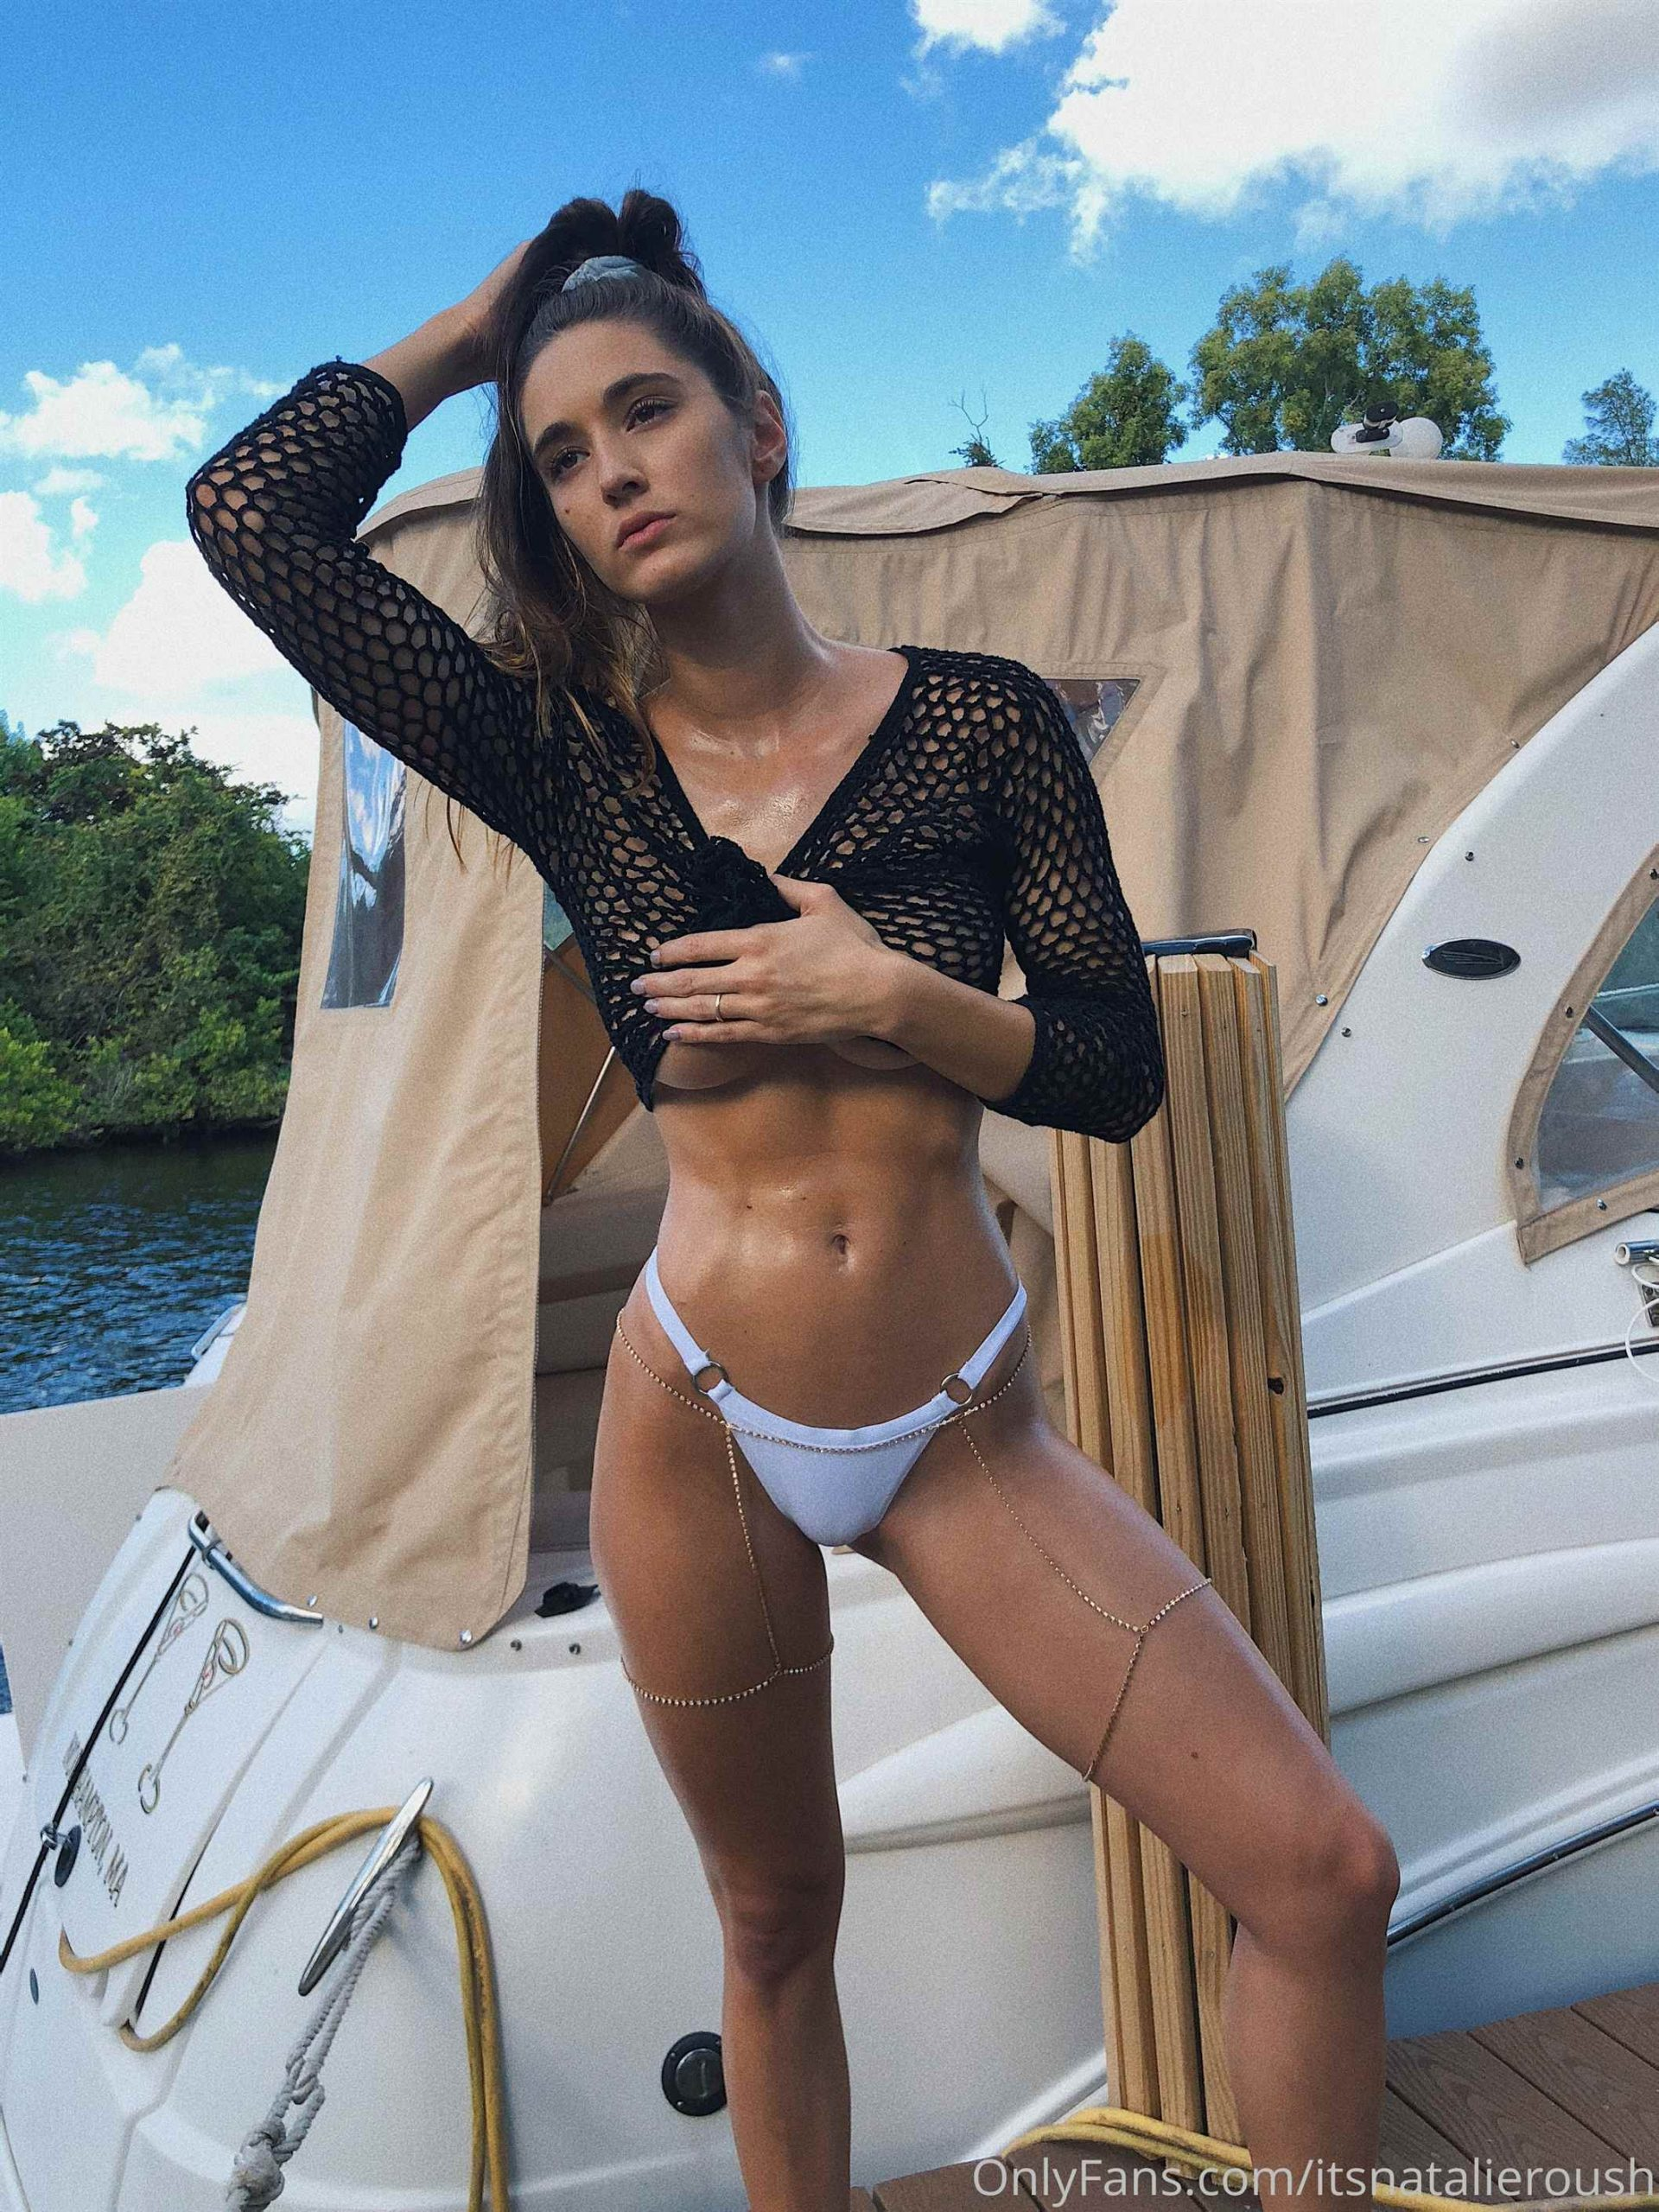 Natalie Roush Nude Leaked Onlyfans Photos 0063